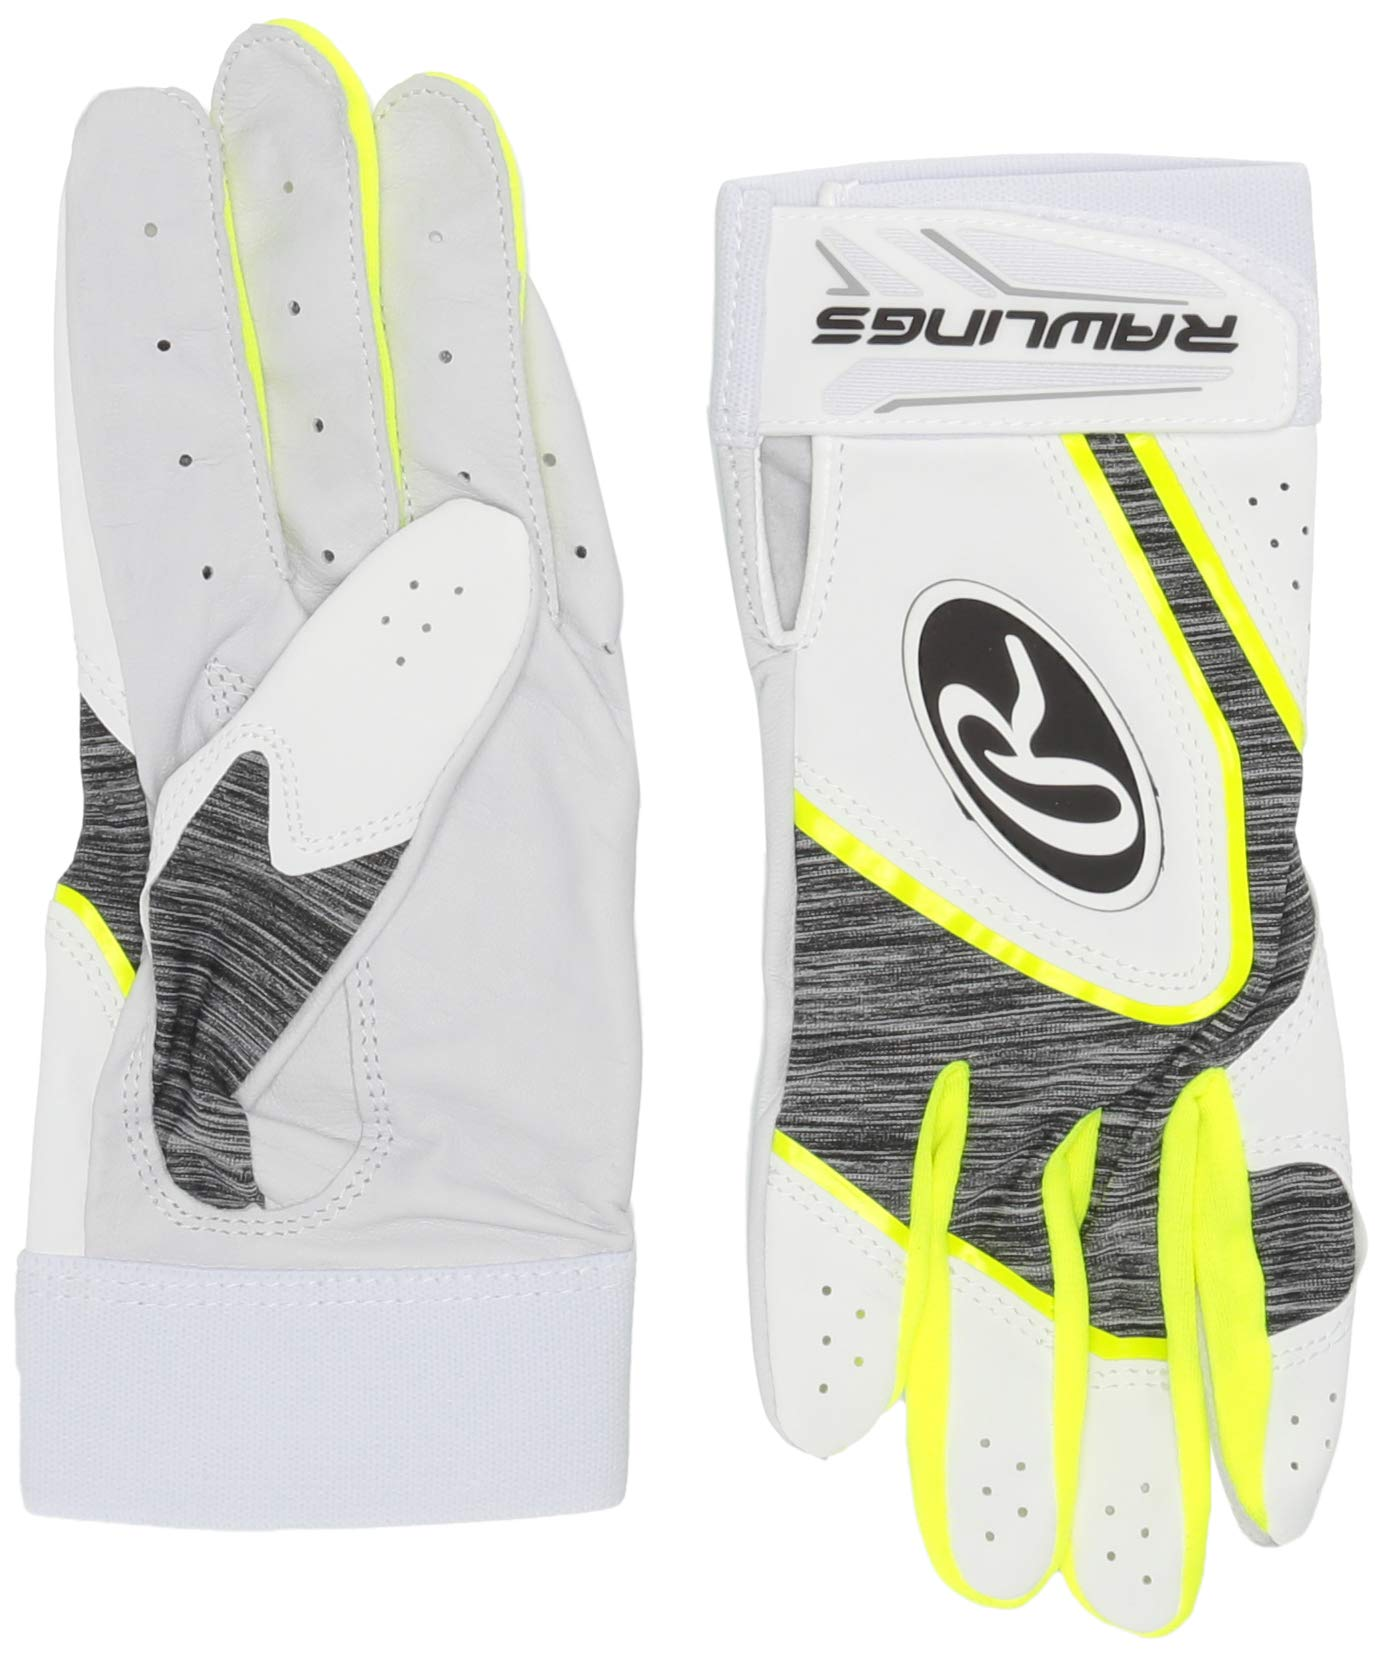 Rawlings 5150WBG-OY-90 Rawlngs 5150 Batting Gloves, Optic Yellow by Rawlings